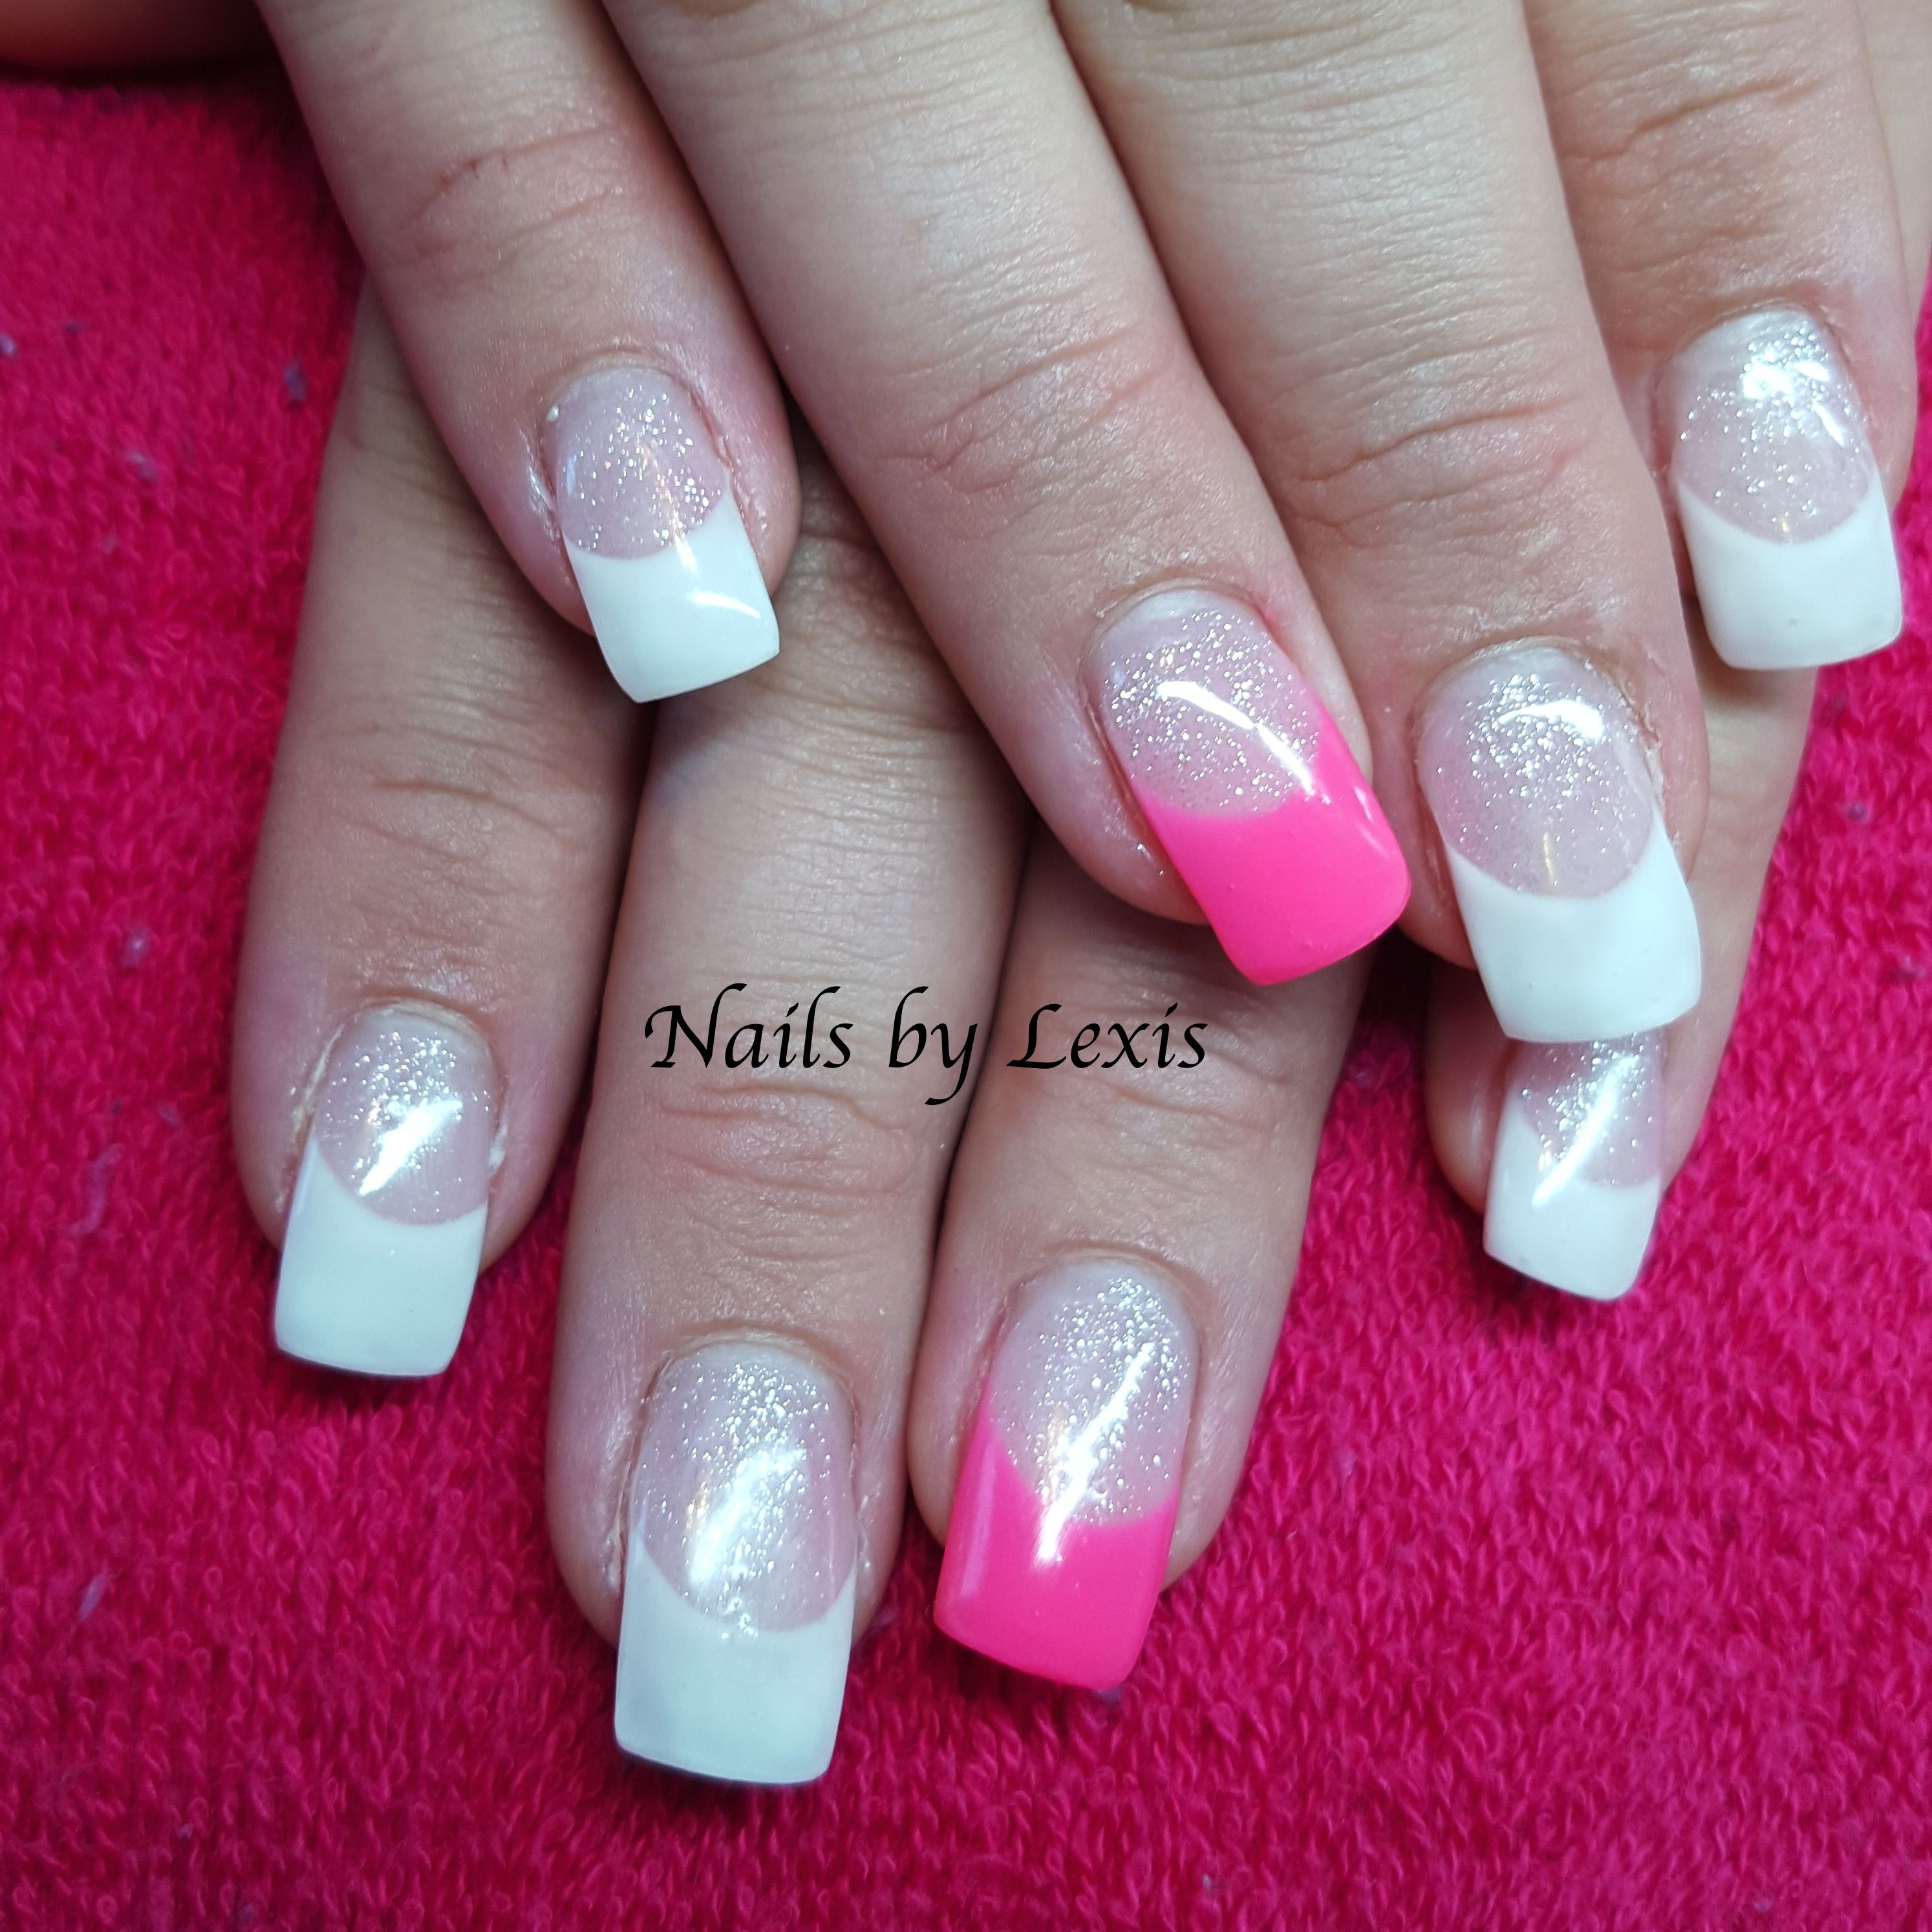 Fuzion Gel Nails By Lexis